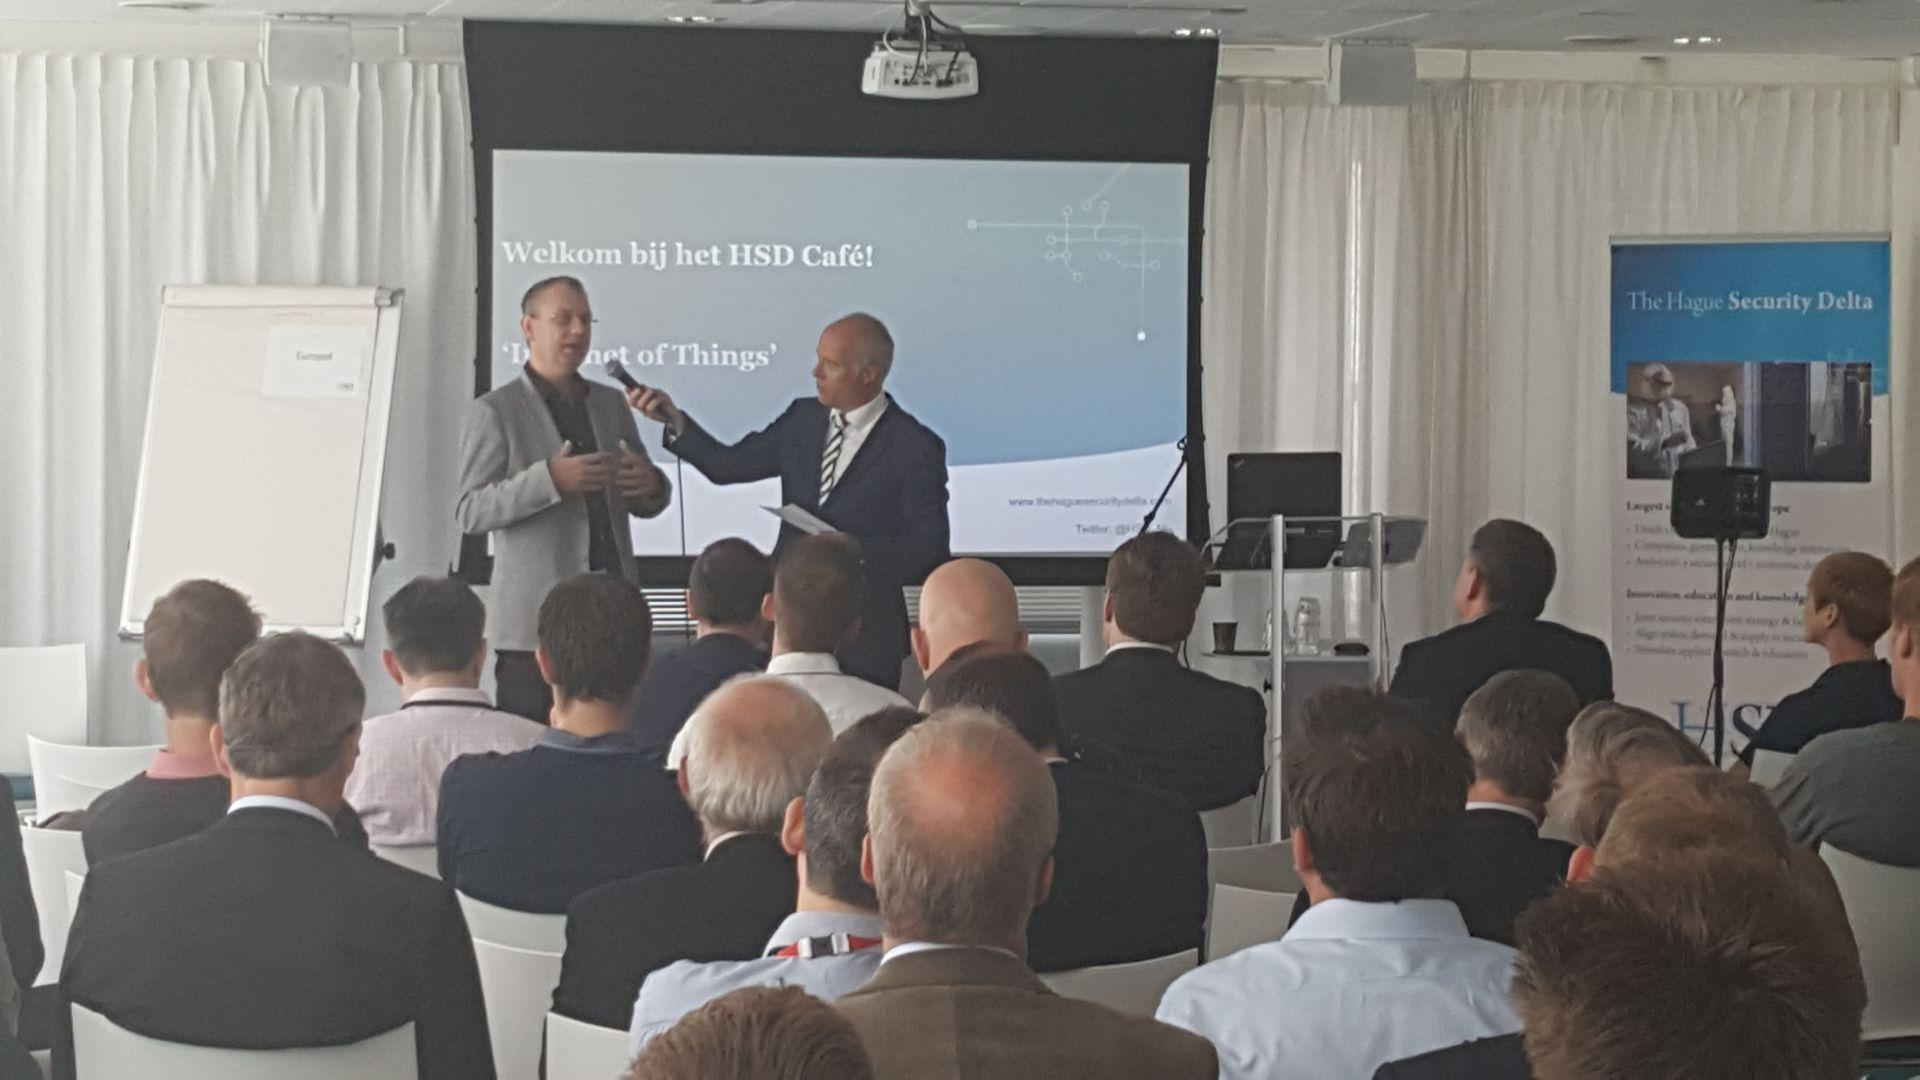 IBM Becomes New Premium Partner and Present its Challenges on Internet of Things (IoT) during HSD Café IoT